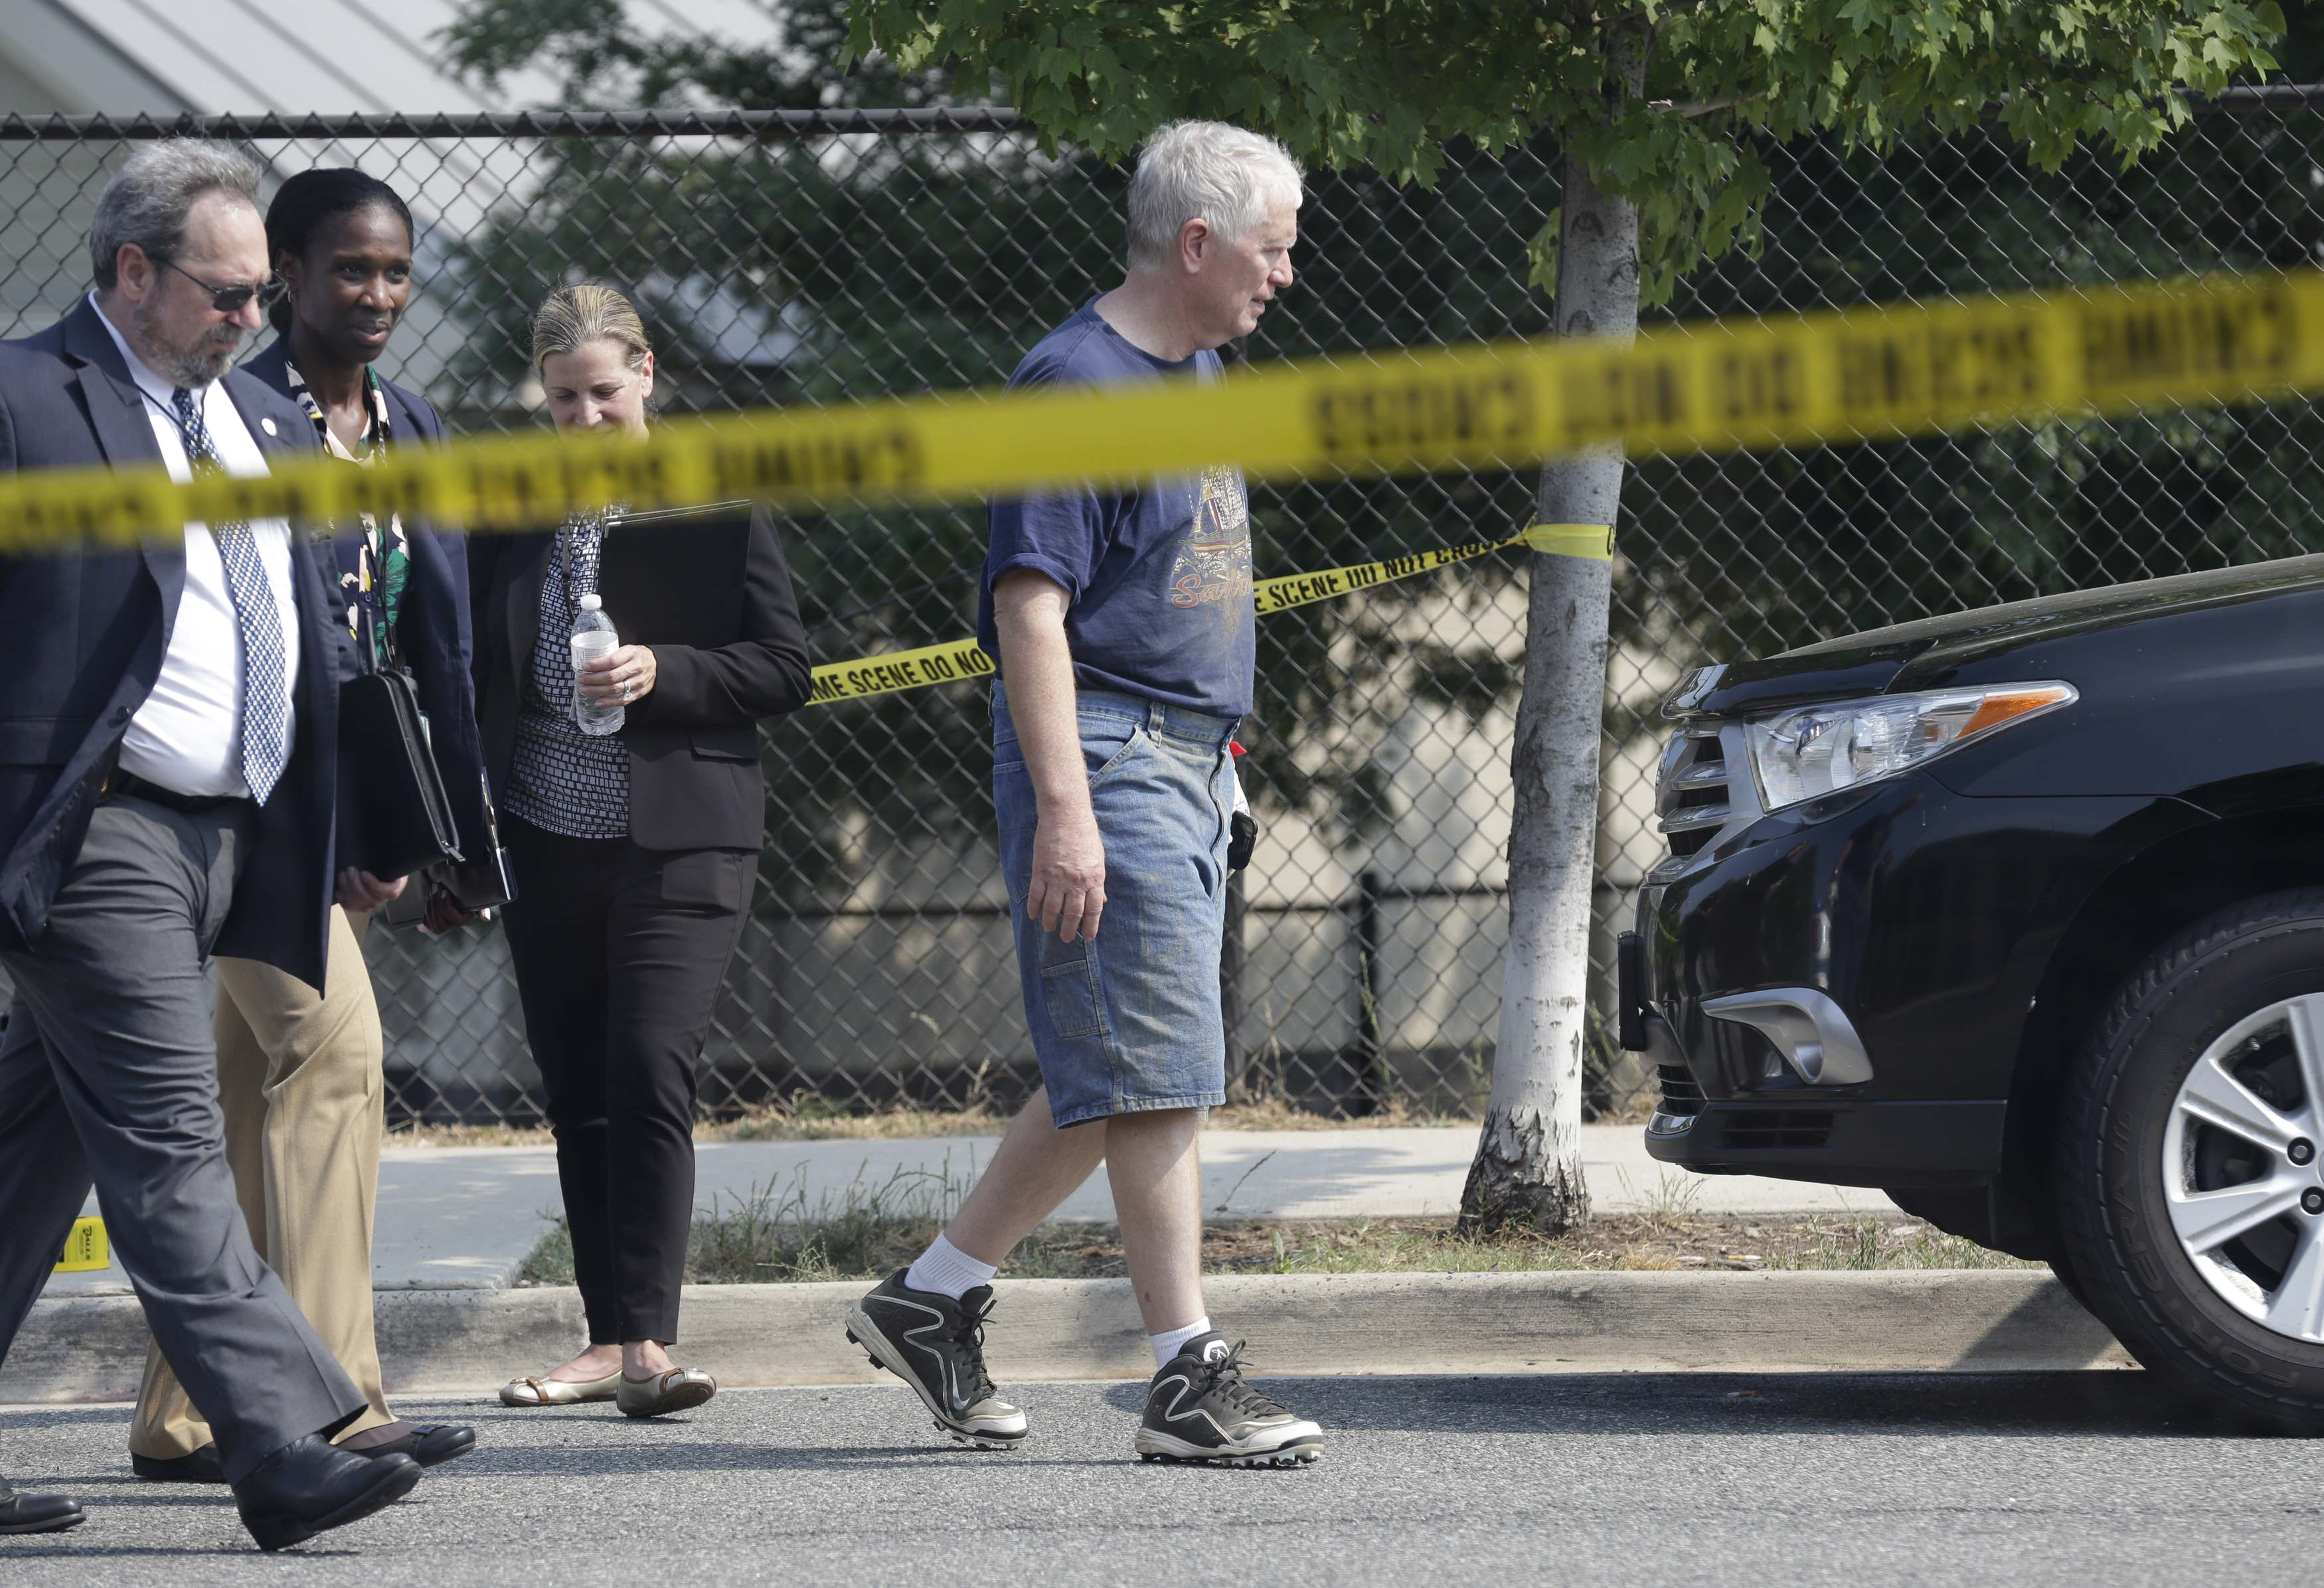 Rep. Mo Brooks (R-AL) departs a shooting scene after speaking to reporters near Washington in Alexandria, Virginia on June 14, 2017. (REUTERS/Joshua Roberts)